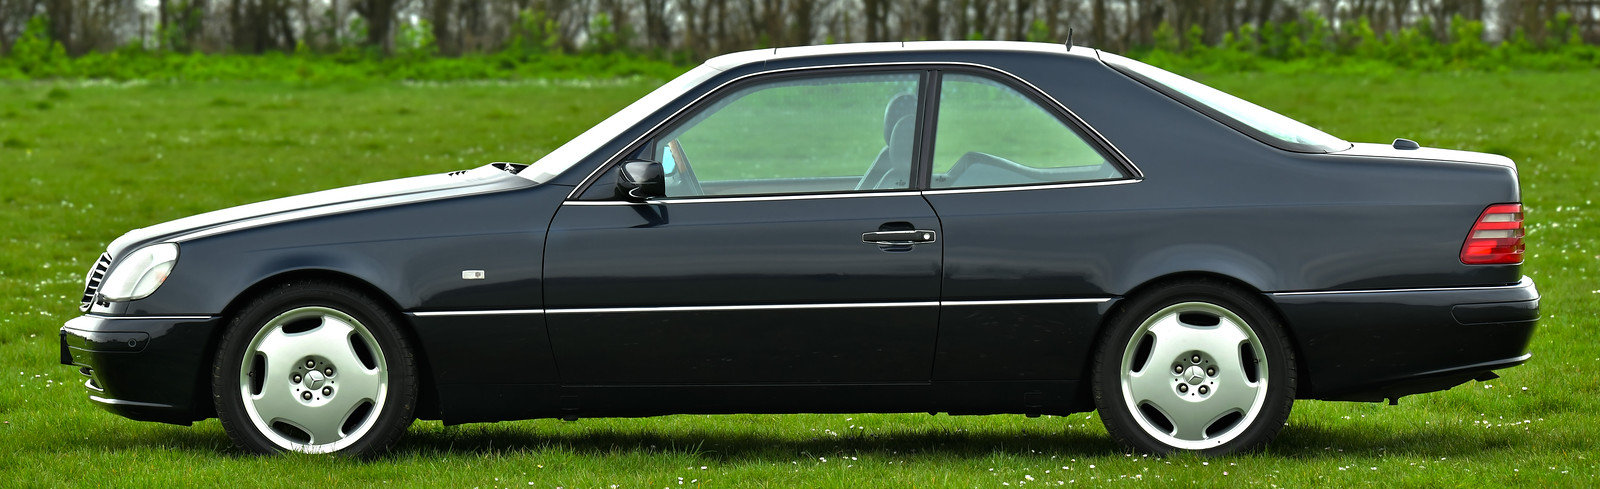 1998 Mercedes-Benz CL500 Sunroof Coupé For Sale (picture 2 of 6)